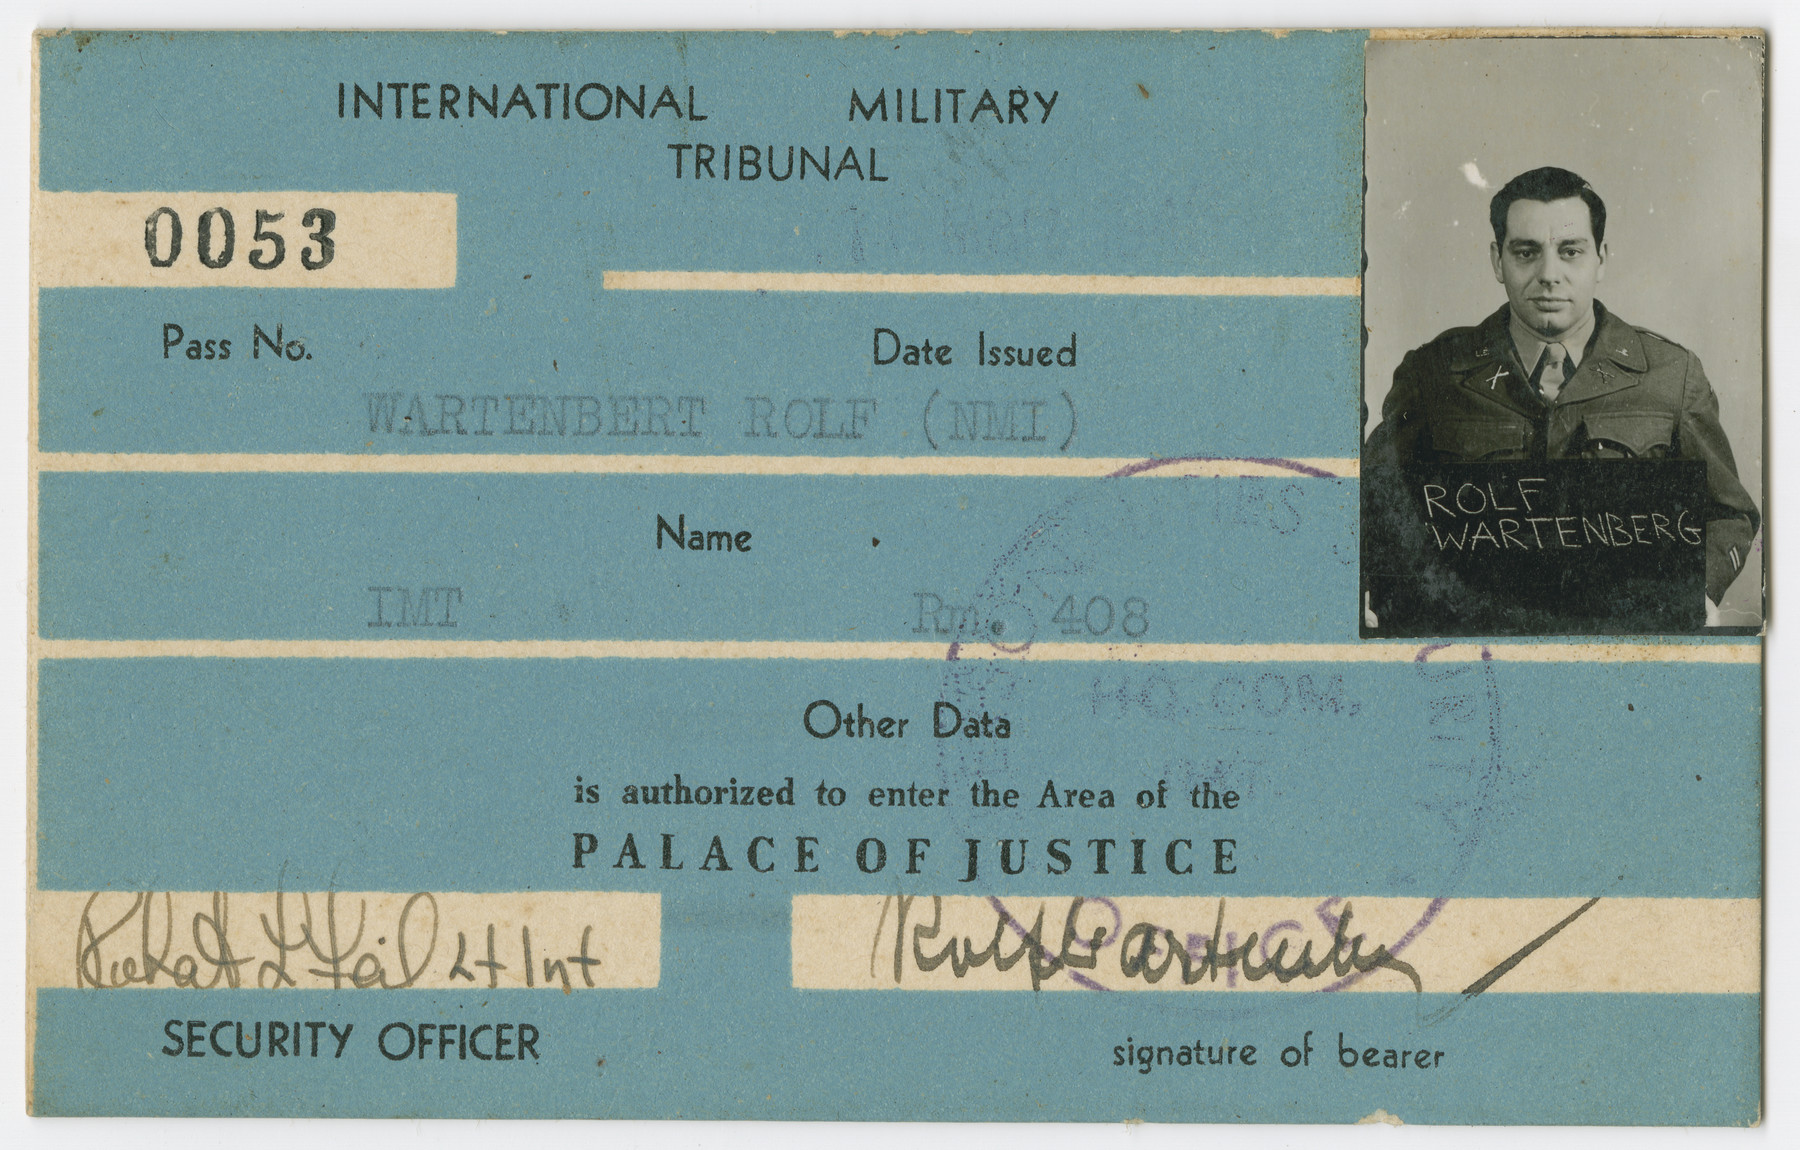 International Military Tribunal identification card for Rolf Wartenberg.